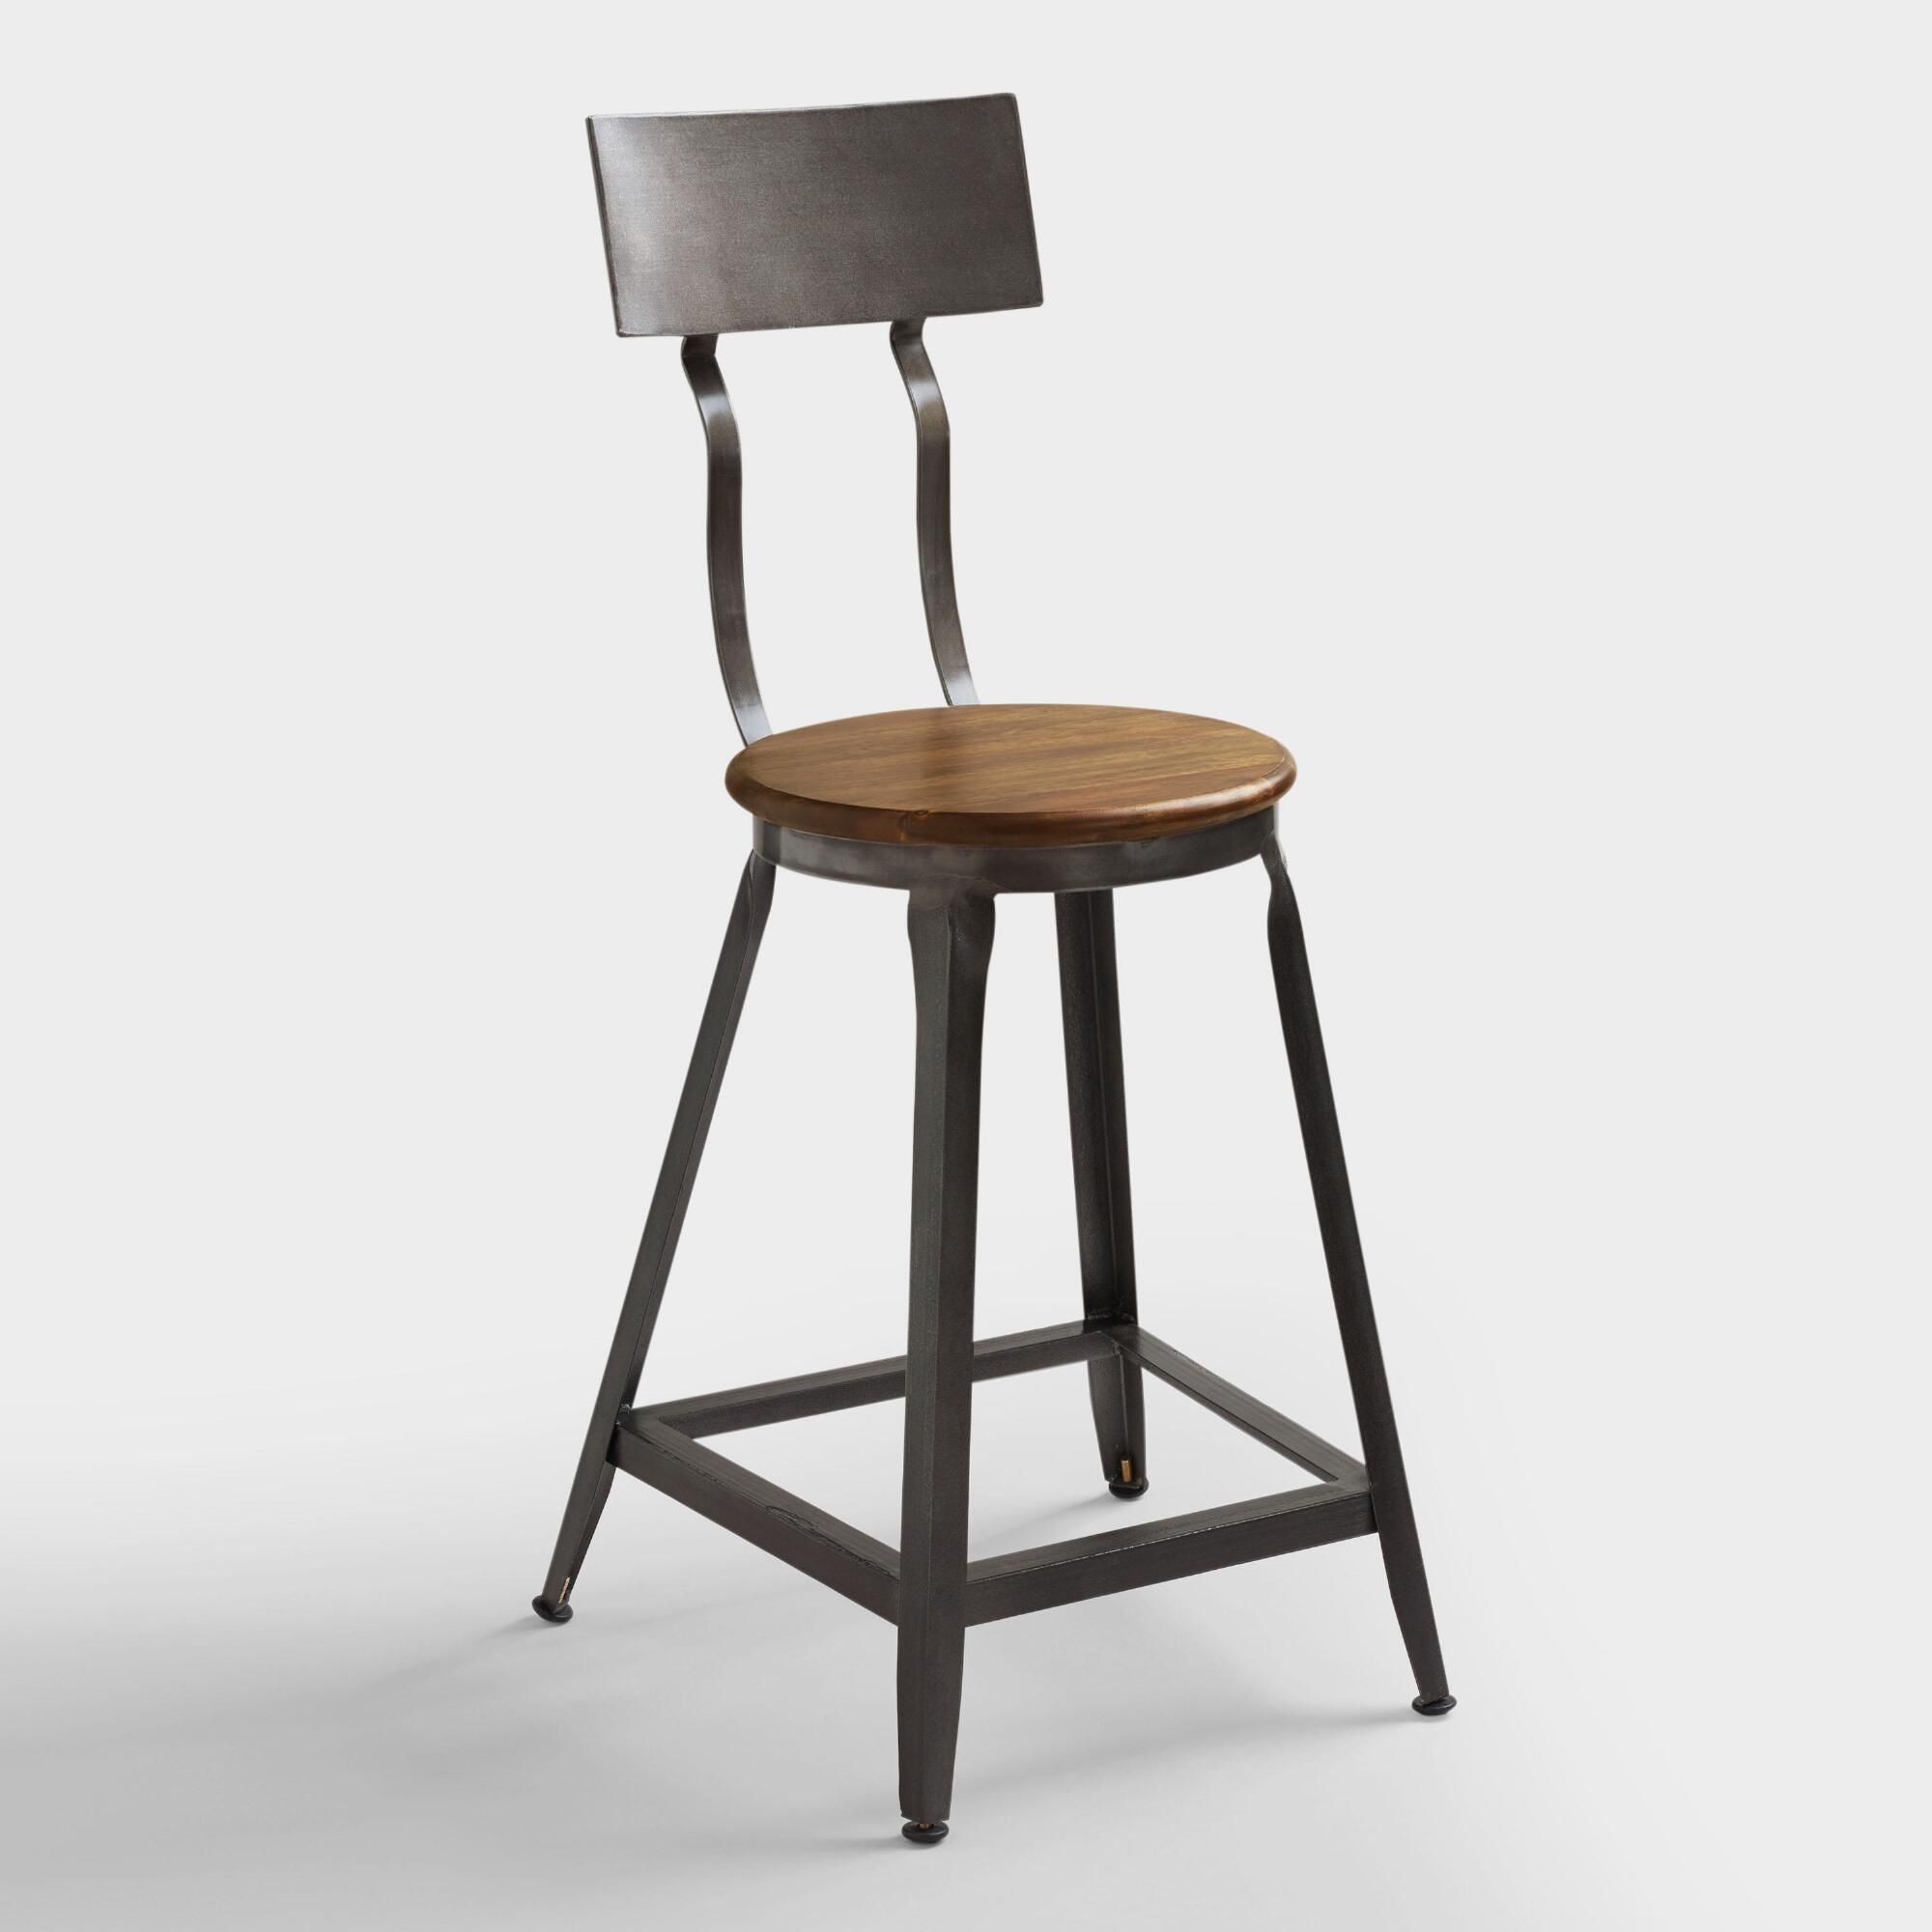 do market bistro bar world product barstool xxx stool parisian stools